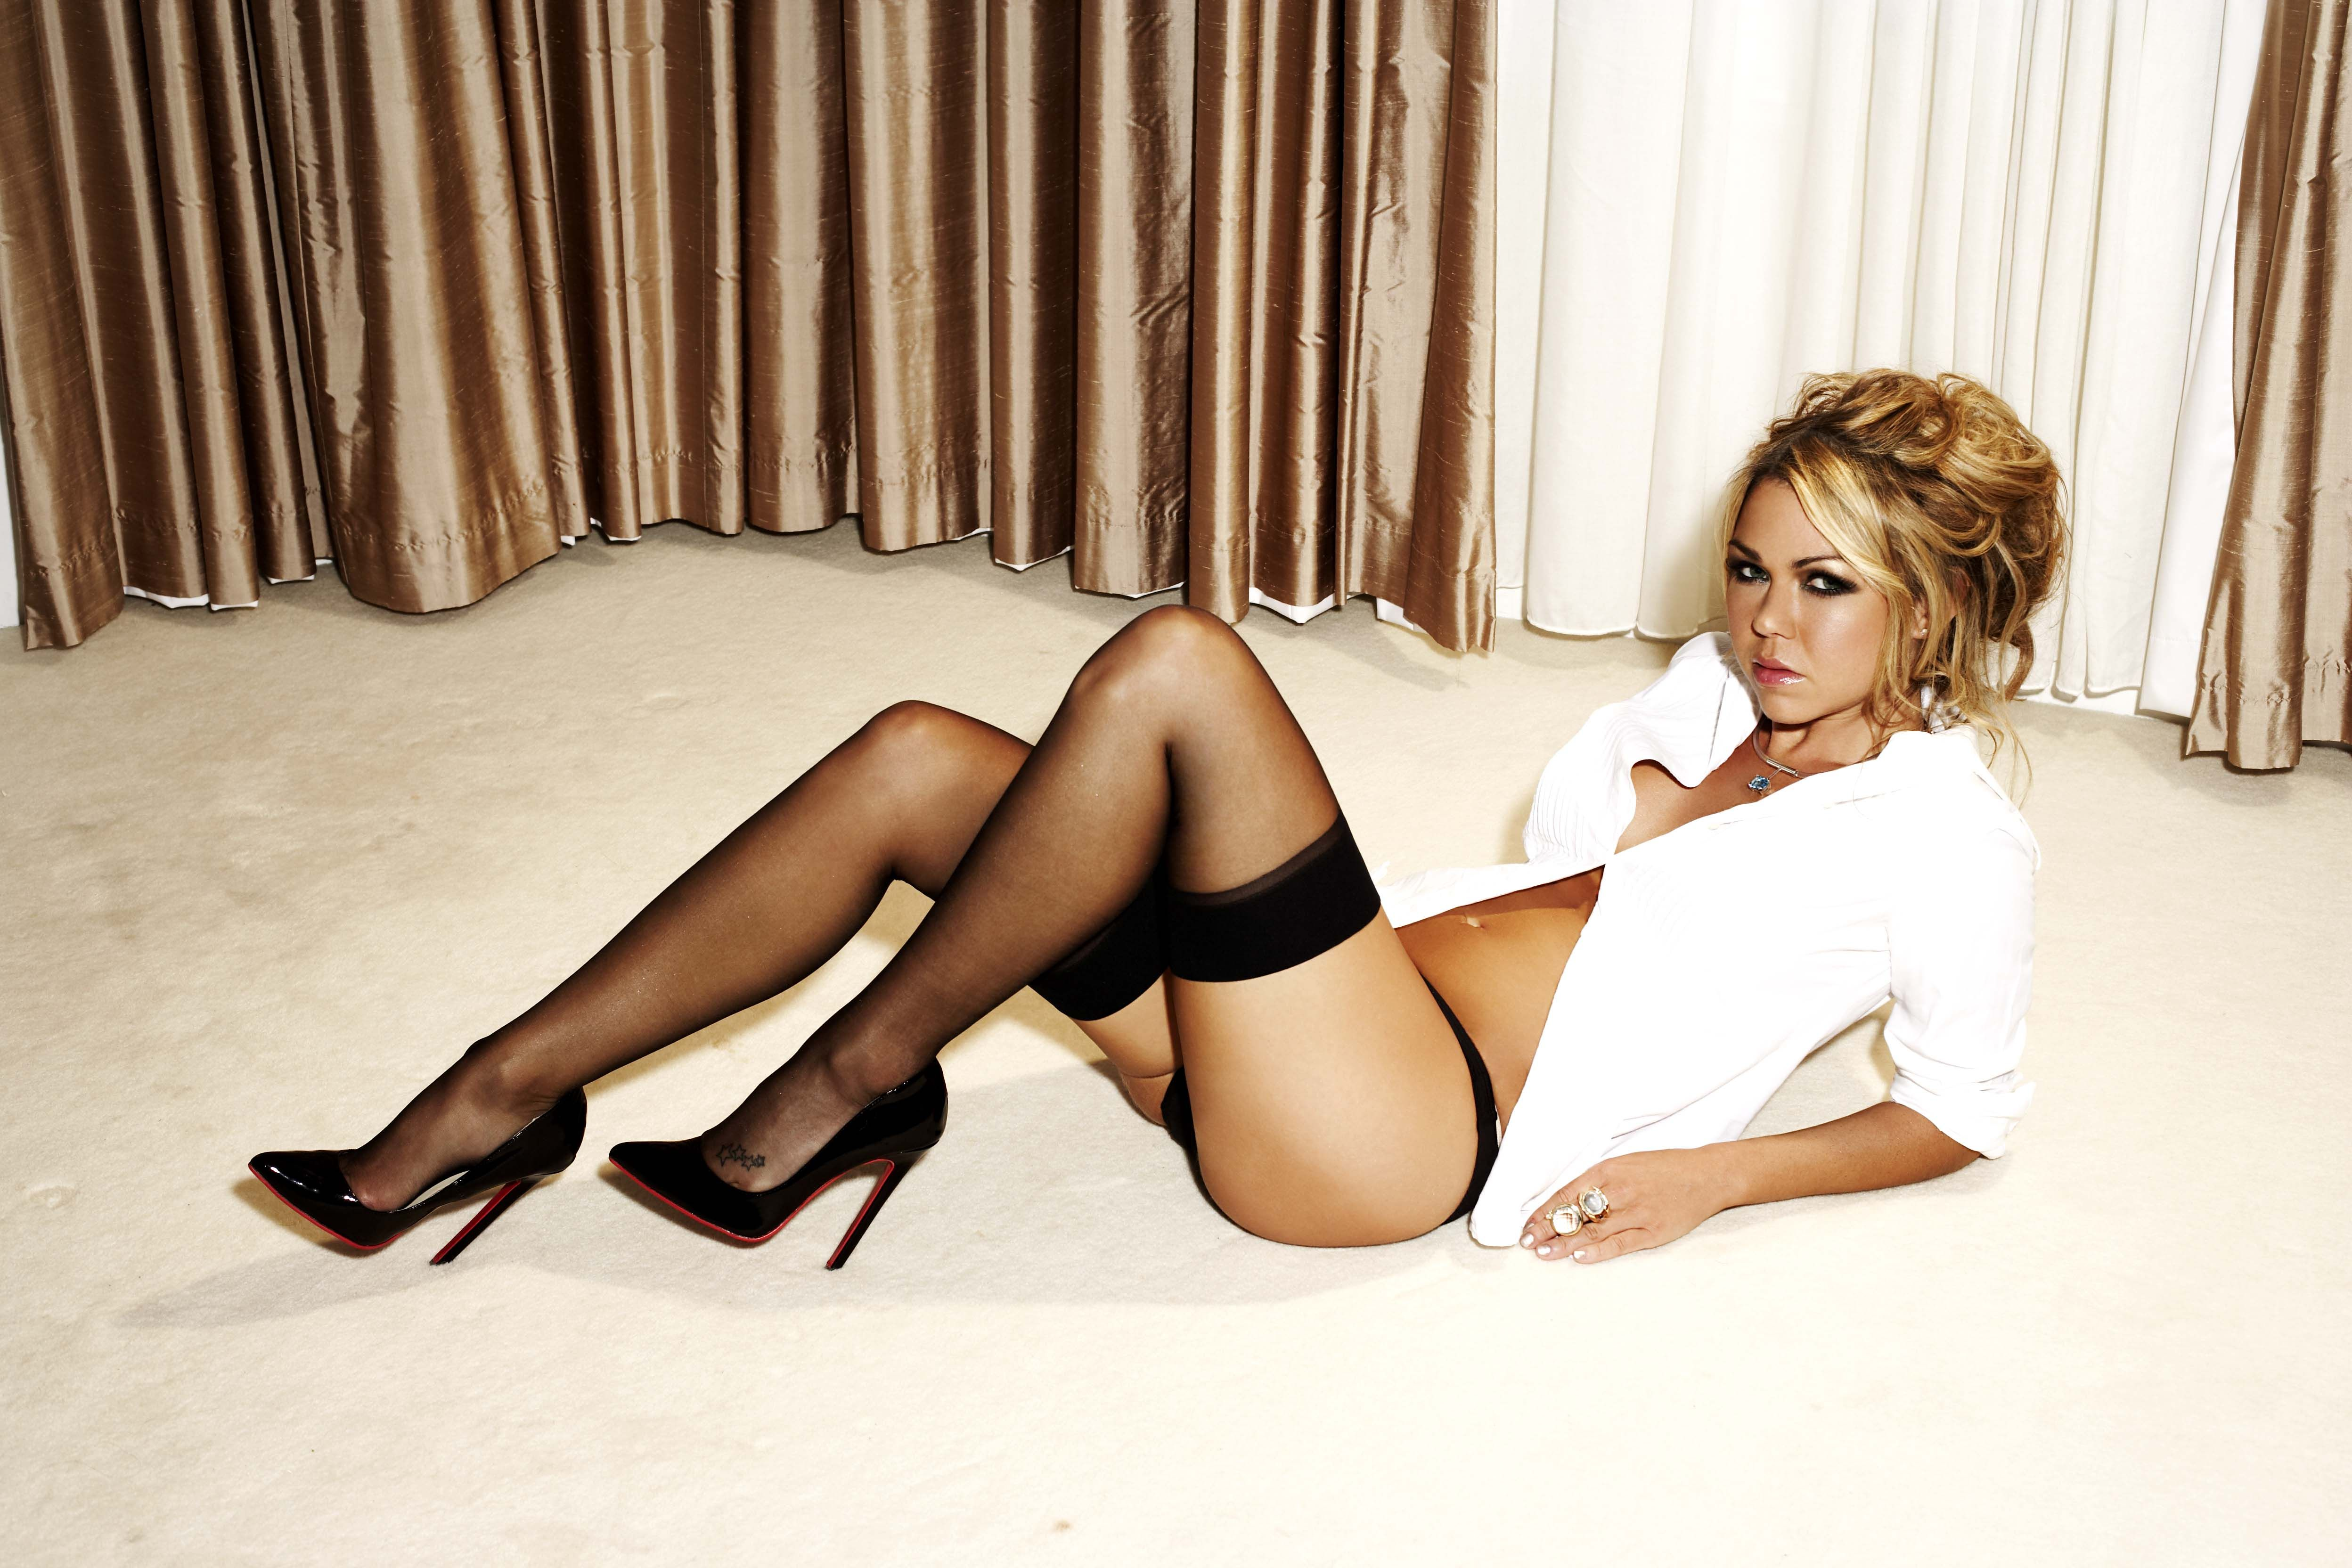 Excellent Adele silva hot sorry, that